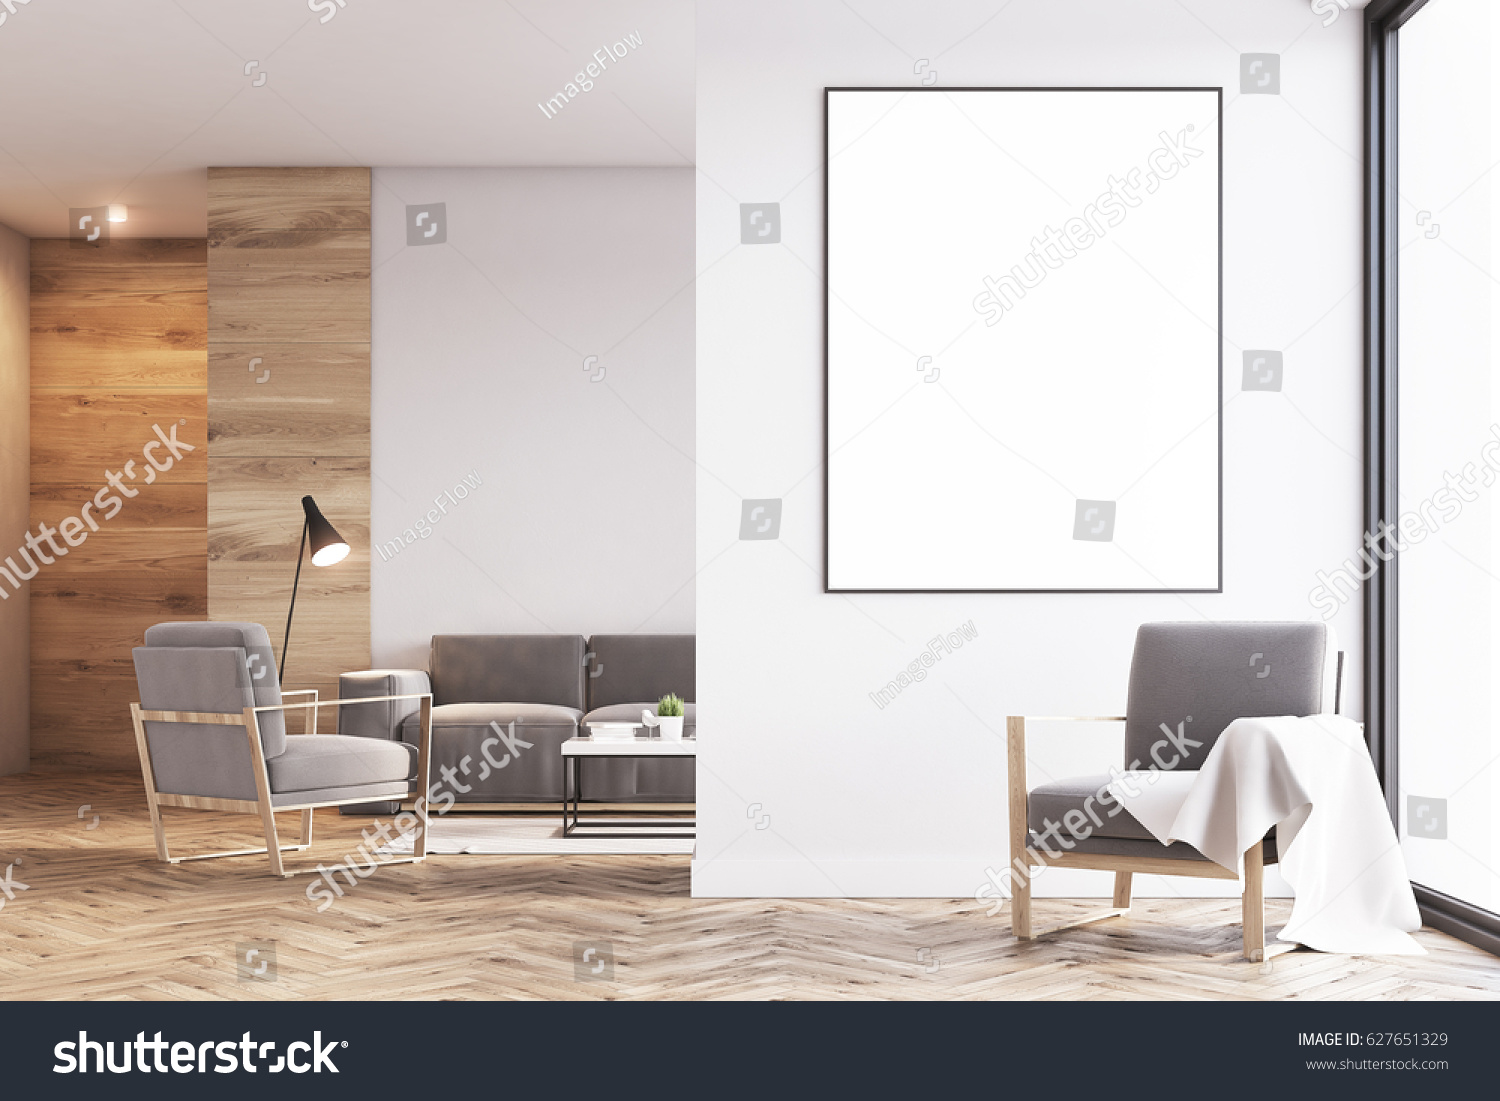 Living Room Interior Light Wooden Walls Stock Illustration 627651329 ...